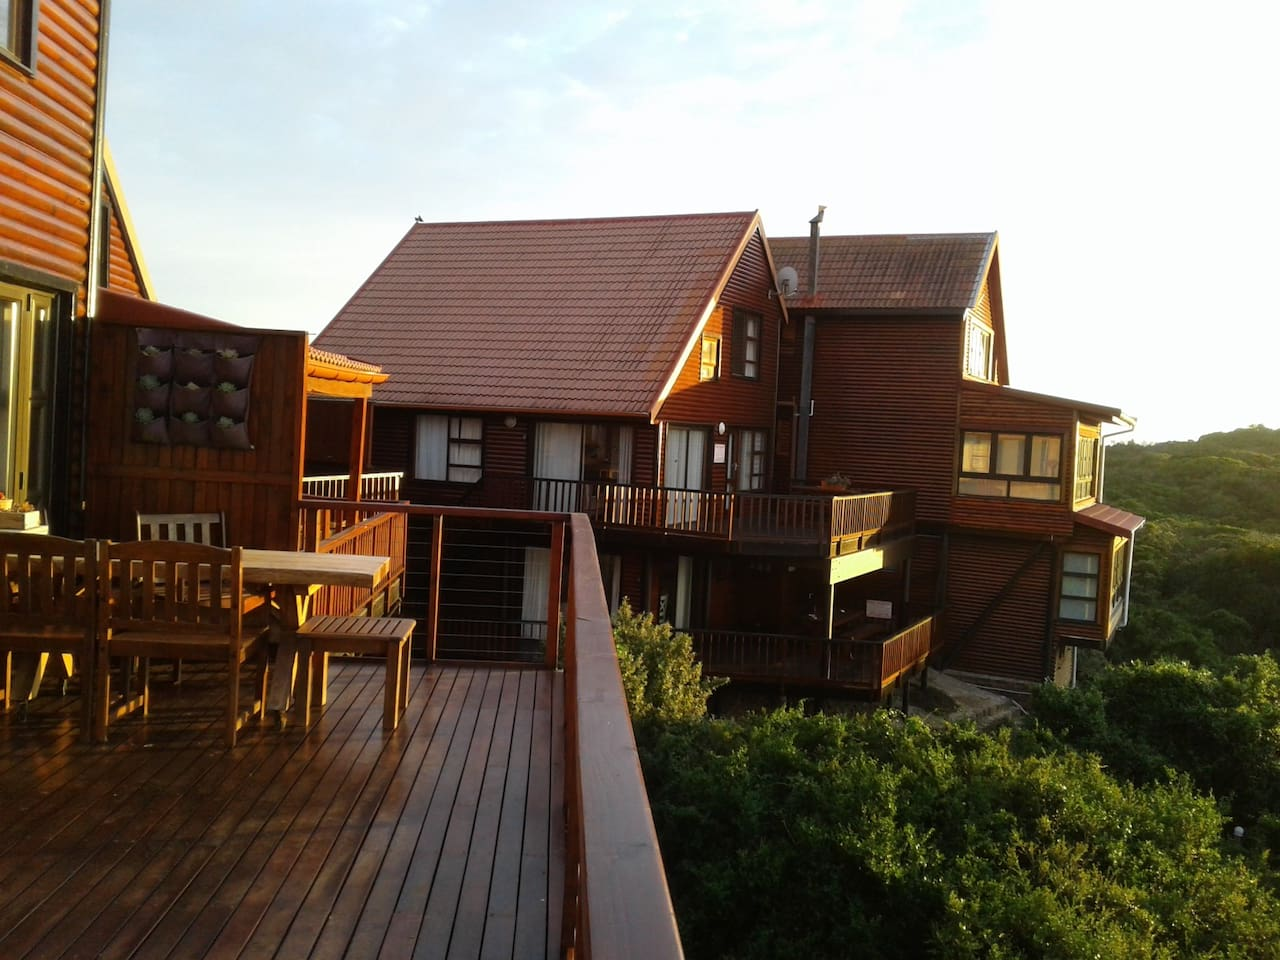 View of 23 Houtboschbaai taken from the balcony of a neighbouring house. The flat is on the ground floor and the house on the first  and second floors.